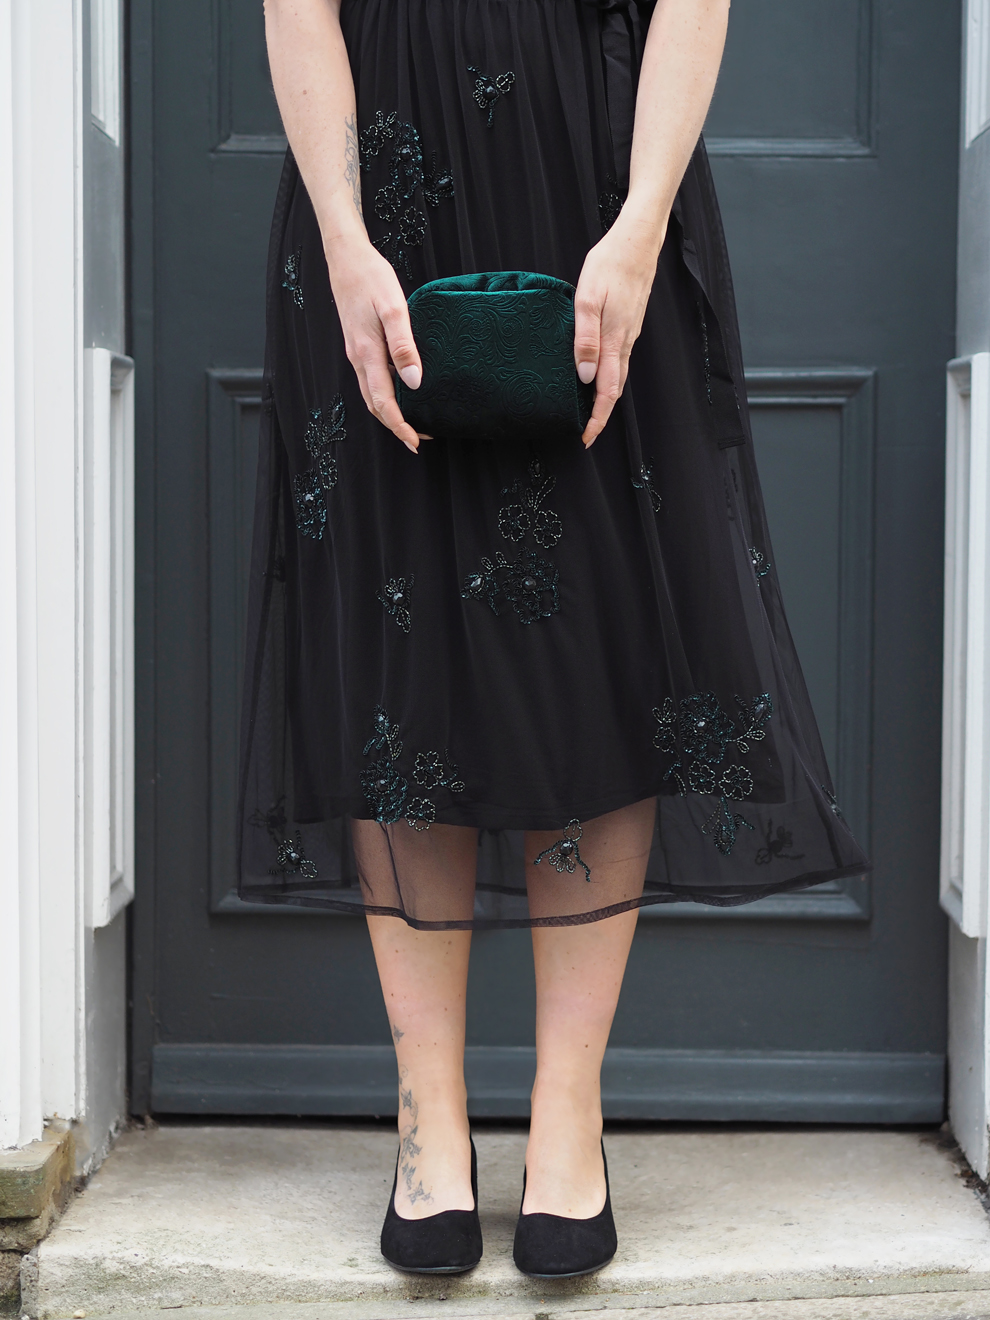 Bang On Style Emerald Dress